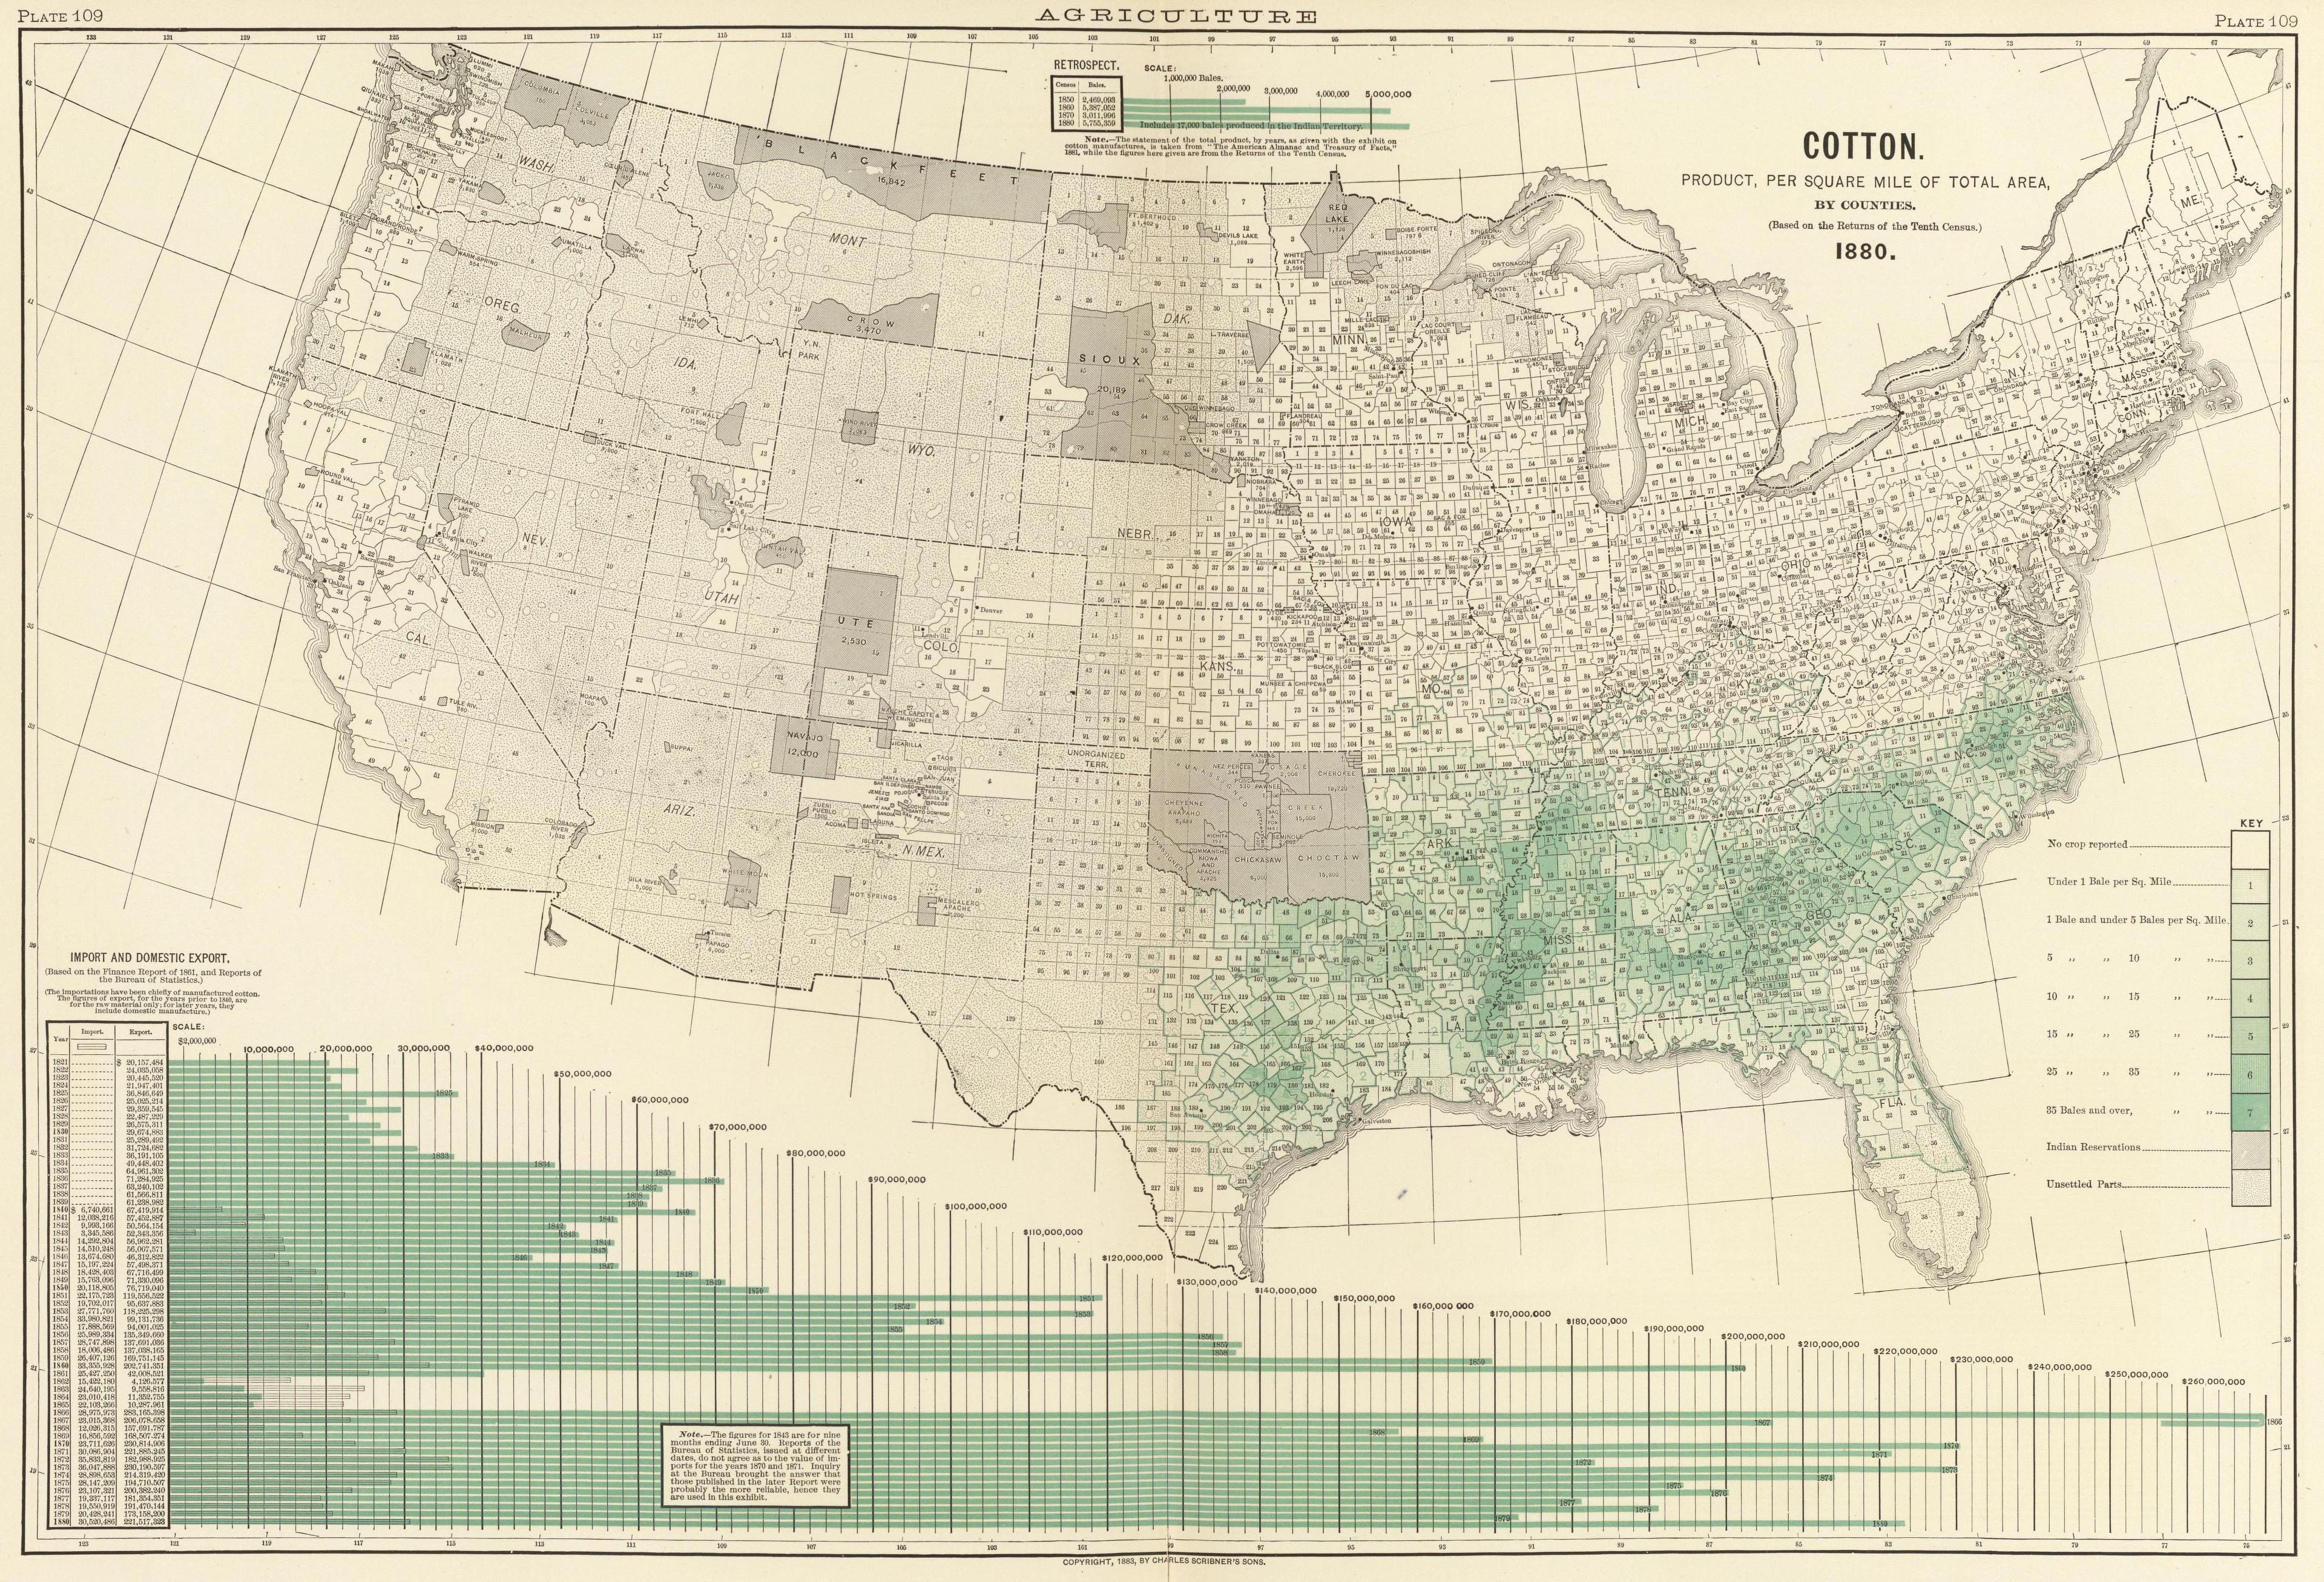 A map of US cotton production in 1880 with charts showing ...  Us Map on us map 1865, us map 1890, us map 1860, us map 1920, us map 1820, us map google earth, us map 1900, us map 1870, us map points of interest, us map 1850, us map 1910, us map 8.5 x 11, us map 1840, us map 13 colonies, us map 1790, us map mo, us map 1830, us map oceans, us map 1800, us map by population,